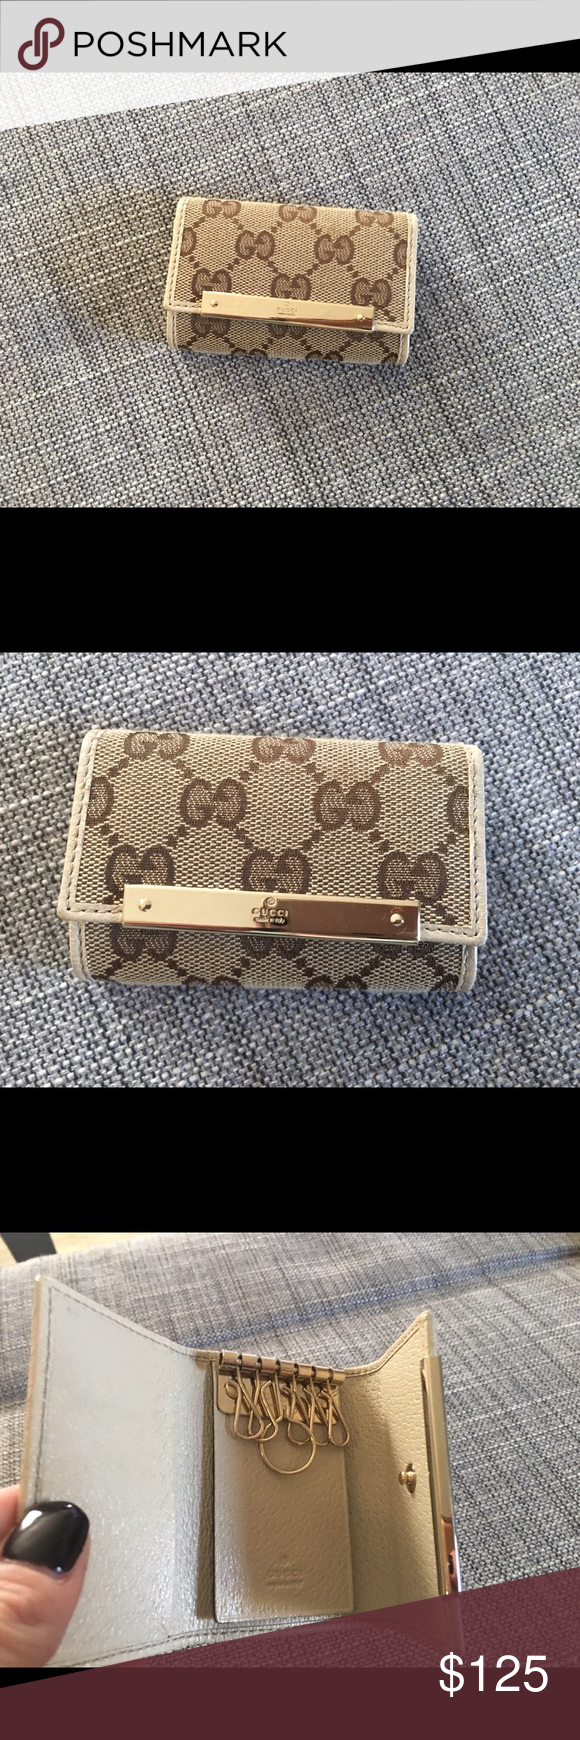 8f04edcebbc Authentic Gucci Key Holder